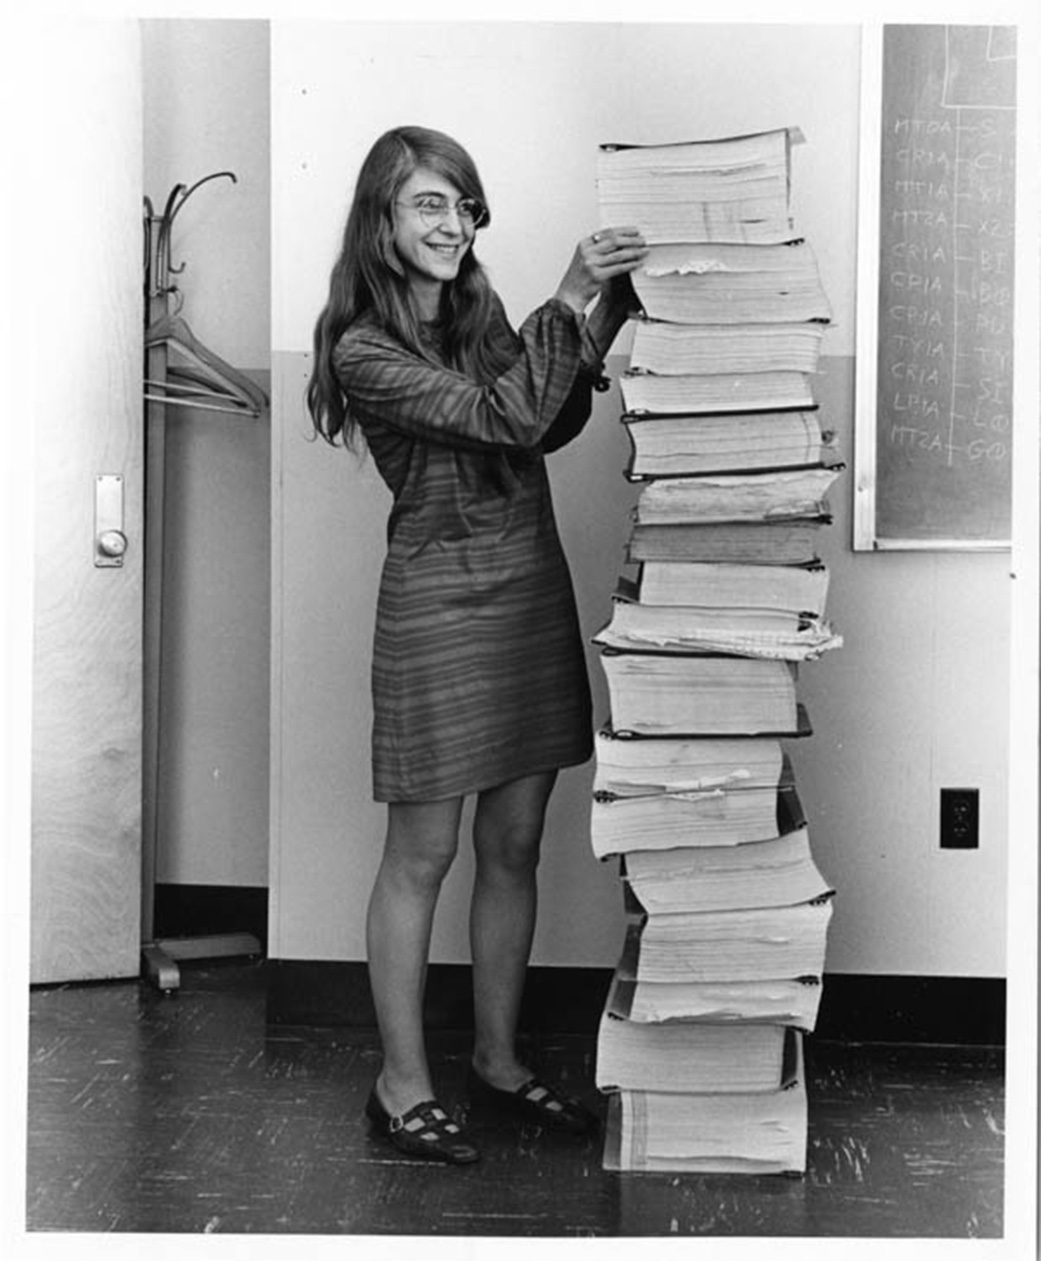 Margaret Hamilton, who wrote Apollo spacecraft guidance software, awarded Presidential Medal of Freedom. [2]